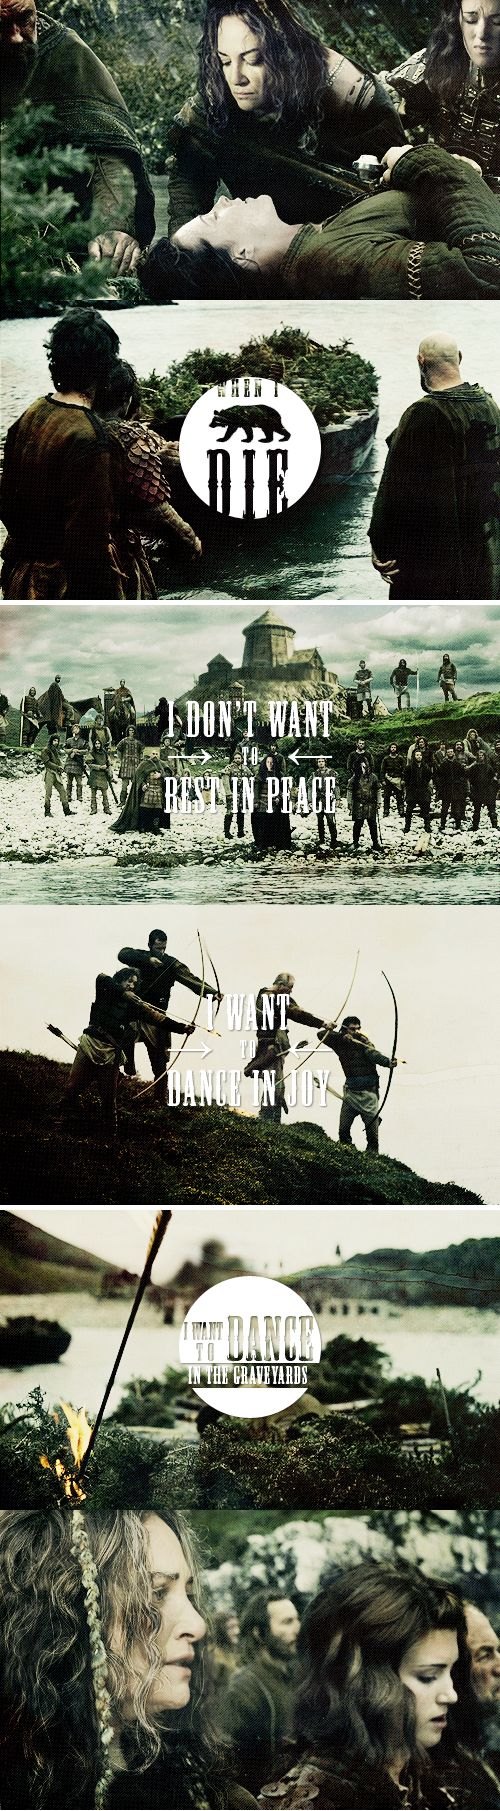 House Mormont: Let's dance in the graveyards. #asoiaf House Mormont is awesome and I want to see more of them.